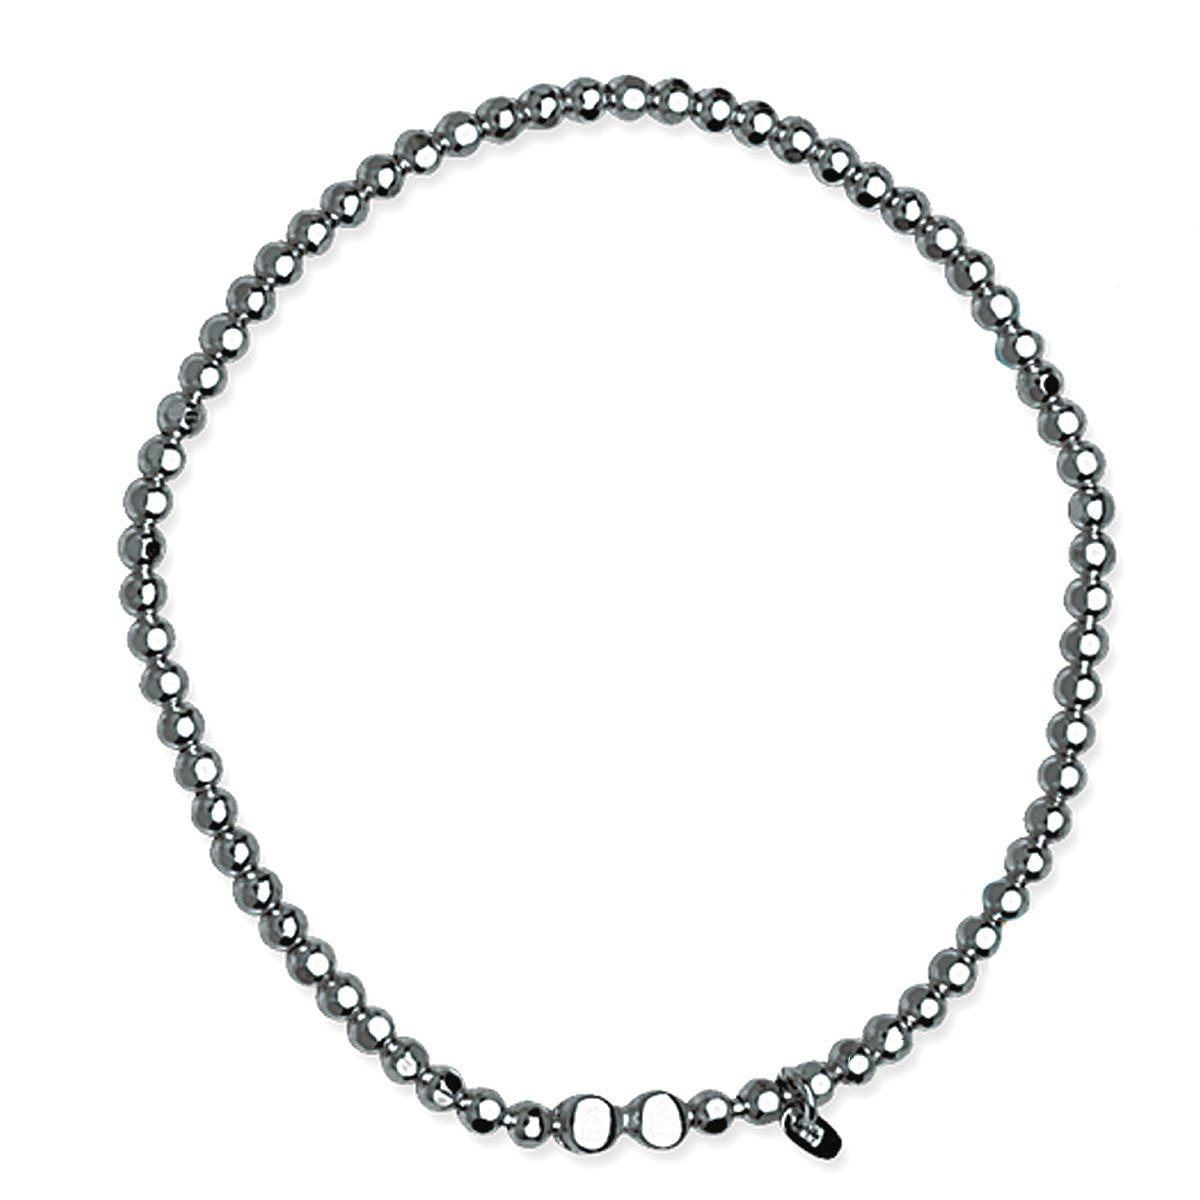 Caviar Collection Stretch Bead Bracelet Black Rhodium on Sterling Silver